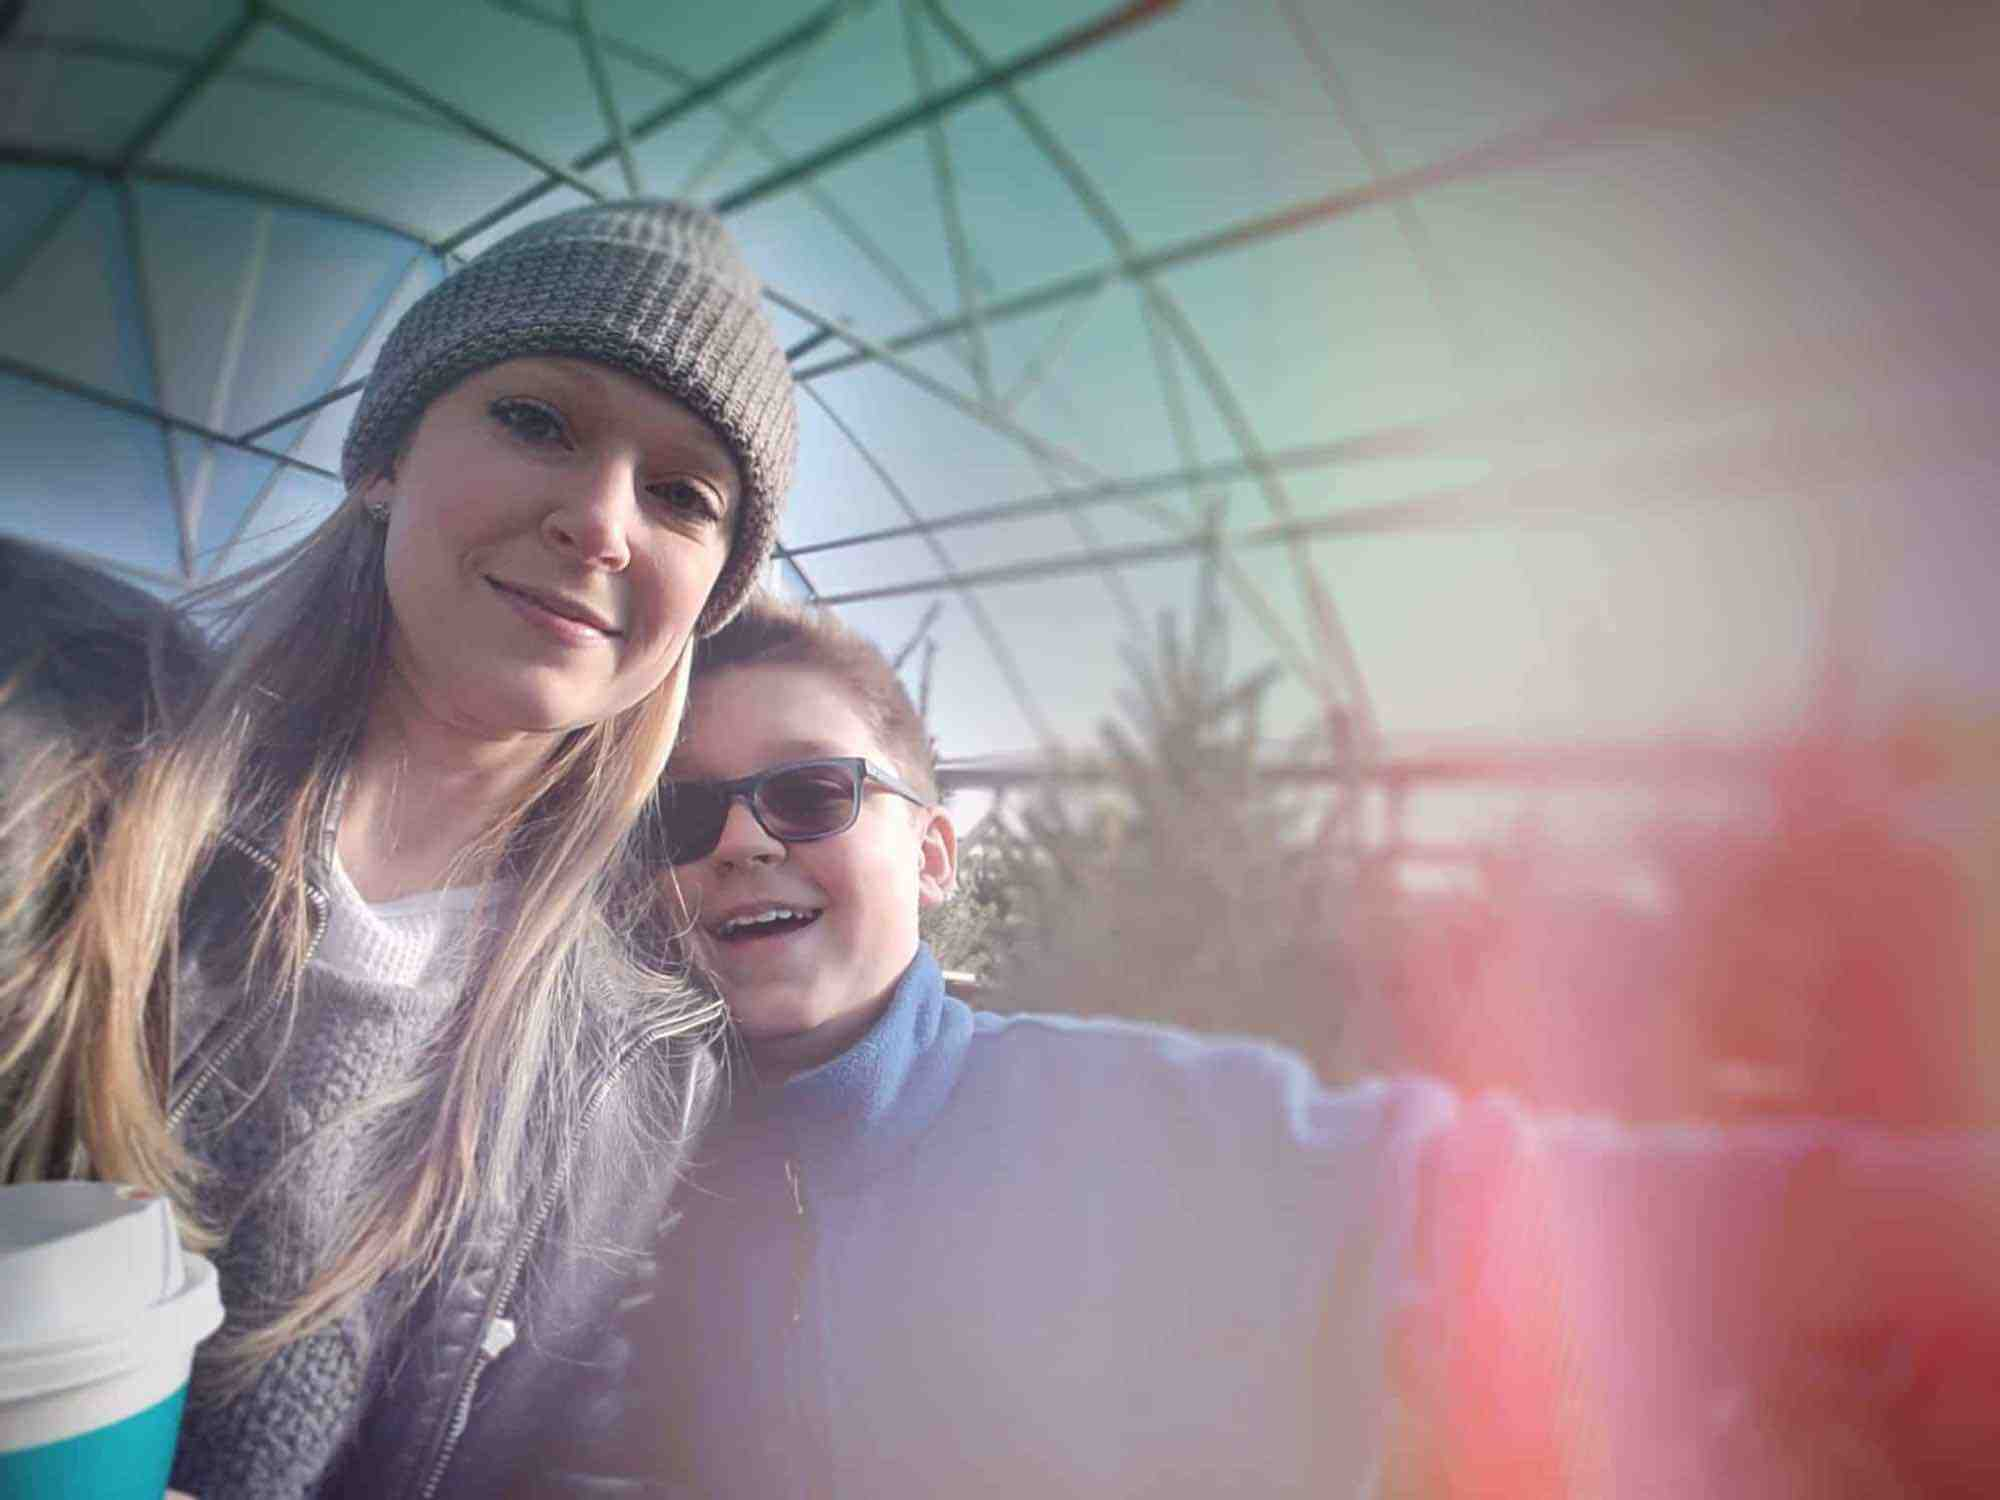 Story subject standing with her son in a Christmas tree greenhouse